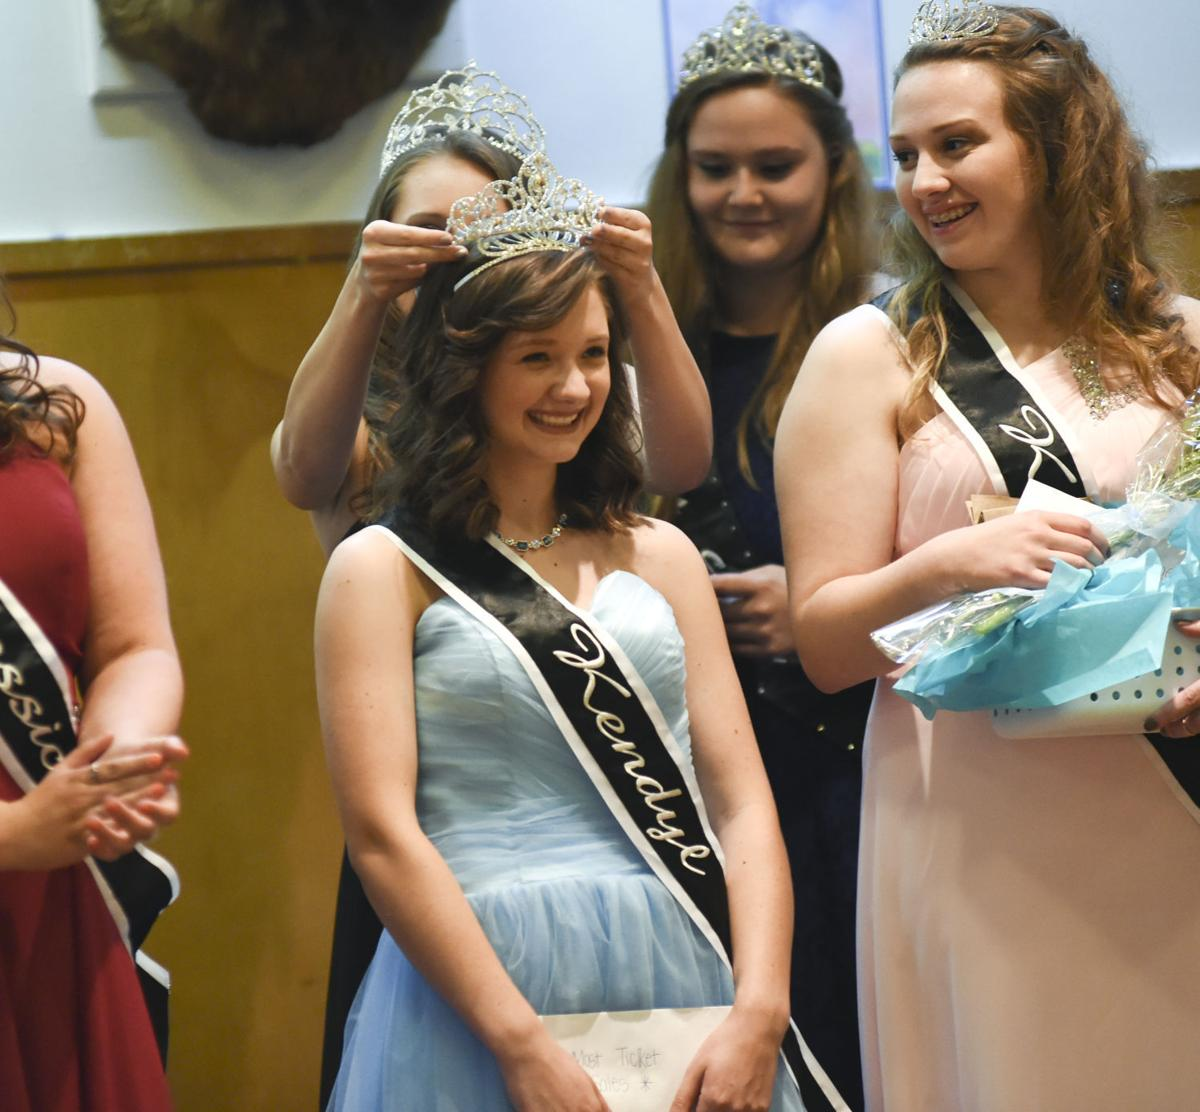 Sportsman's Holiday queen crowned